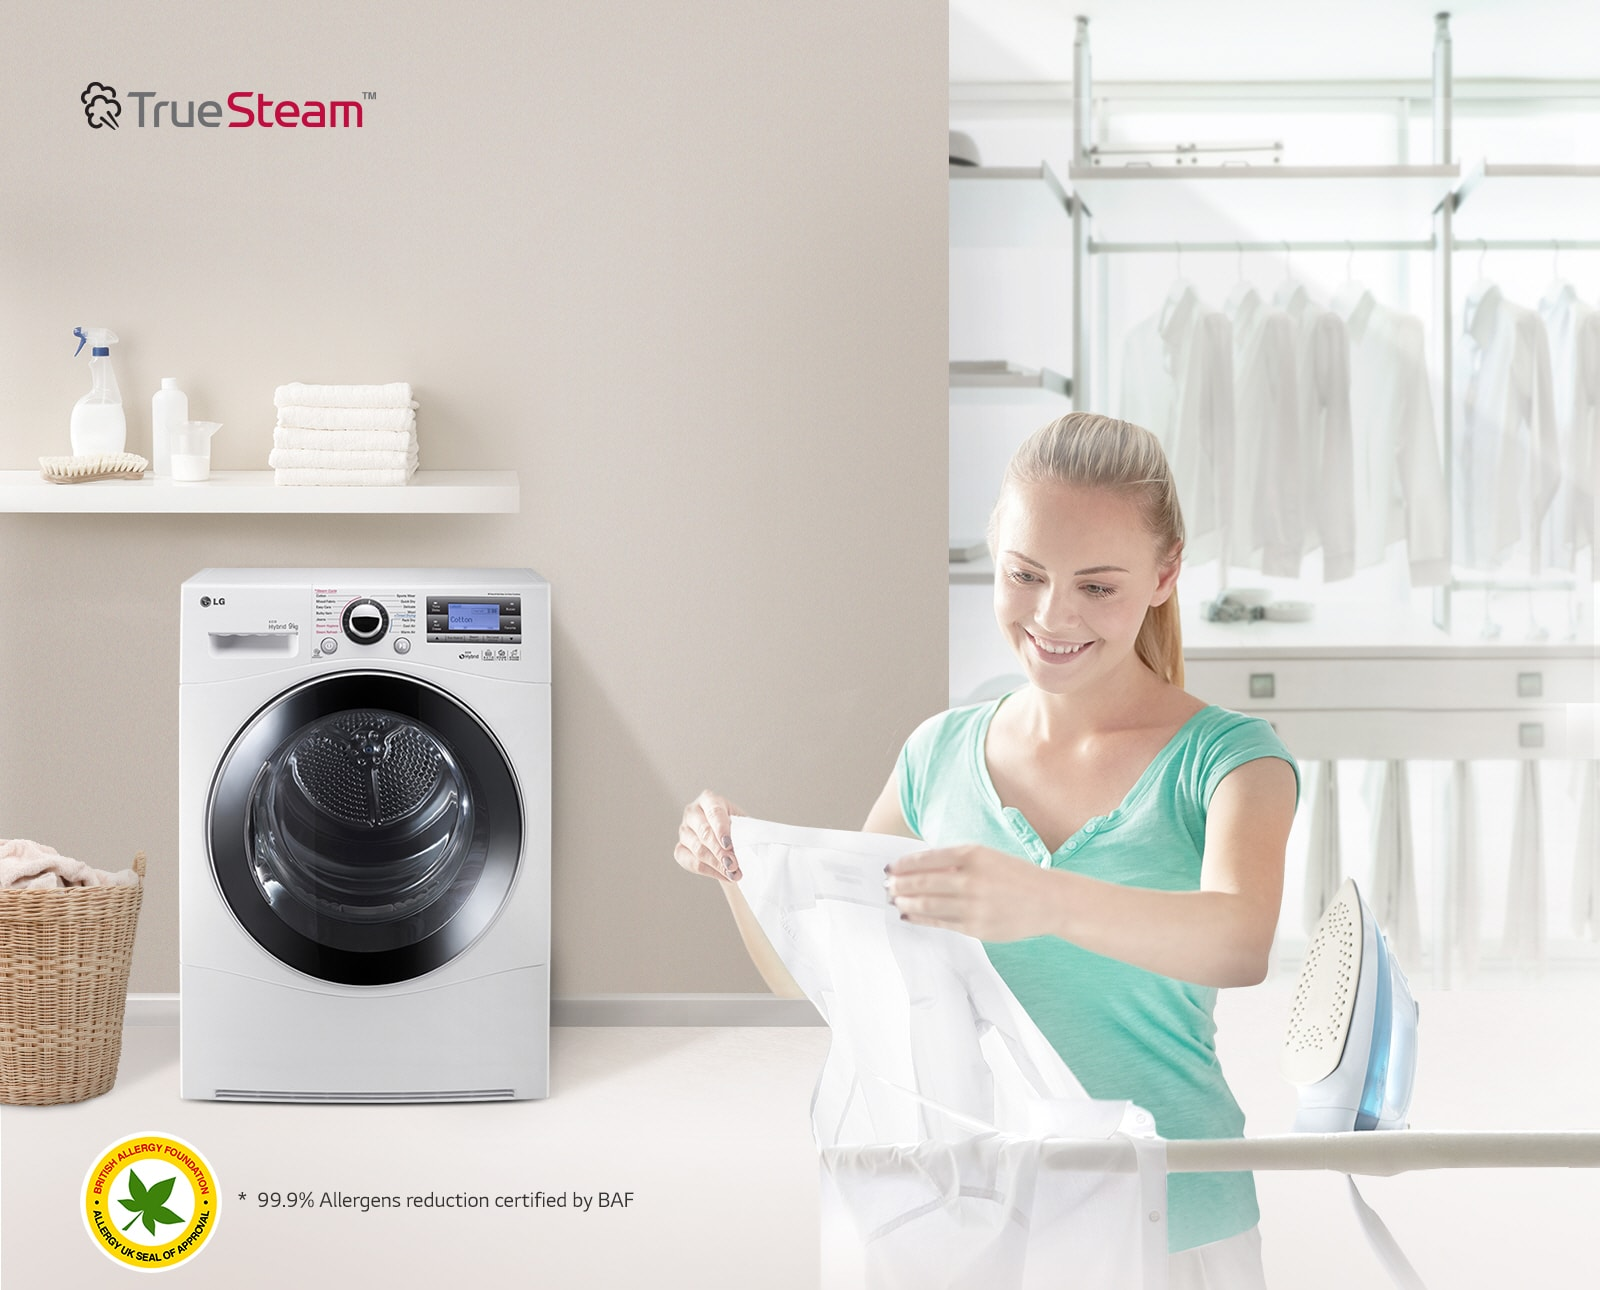 True Steam™ reduces wrinkles to save you time when ironing